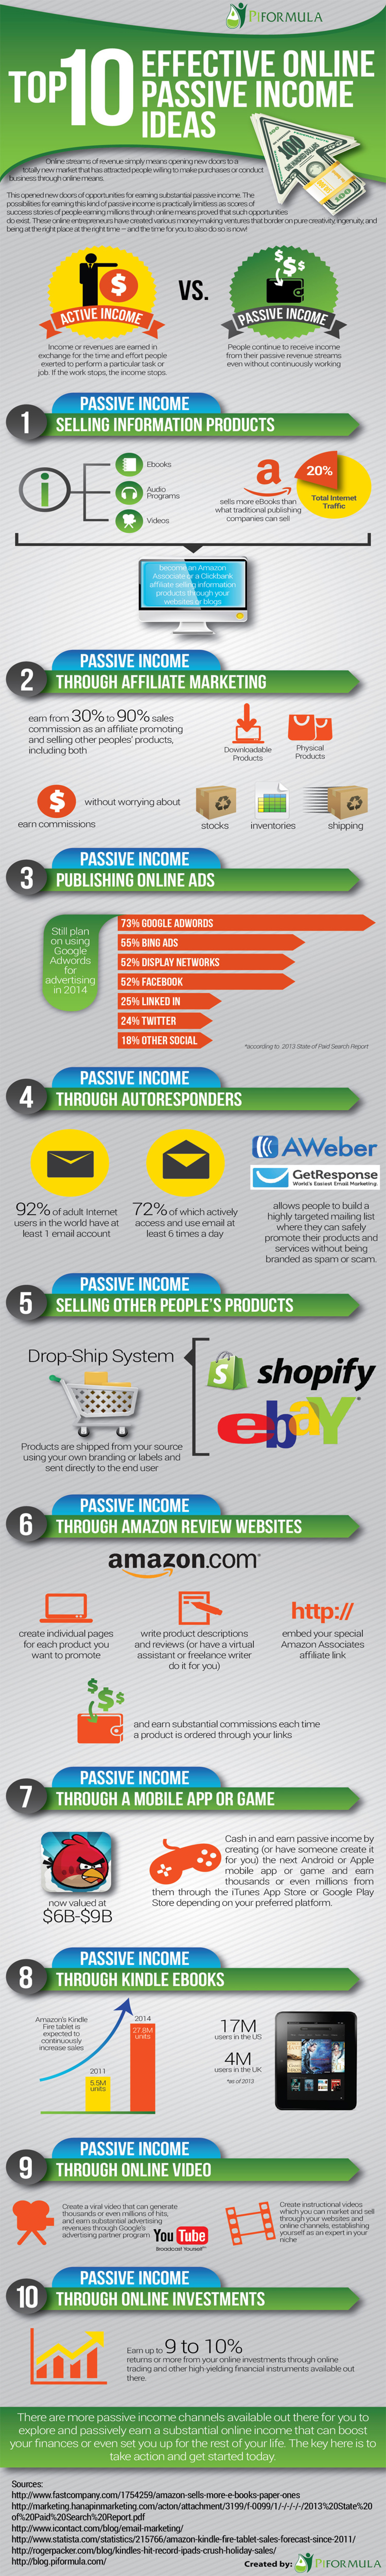 10 Effective Online Passive Income Ideas Infographic